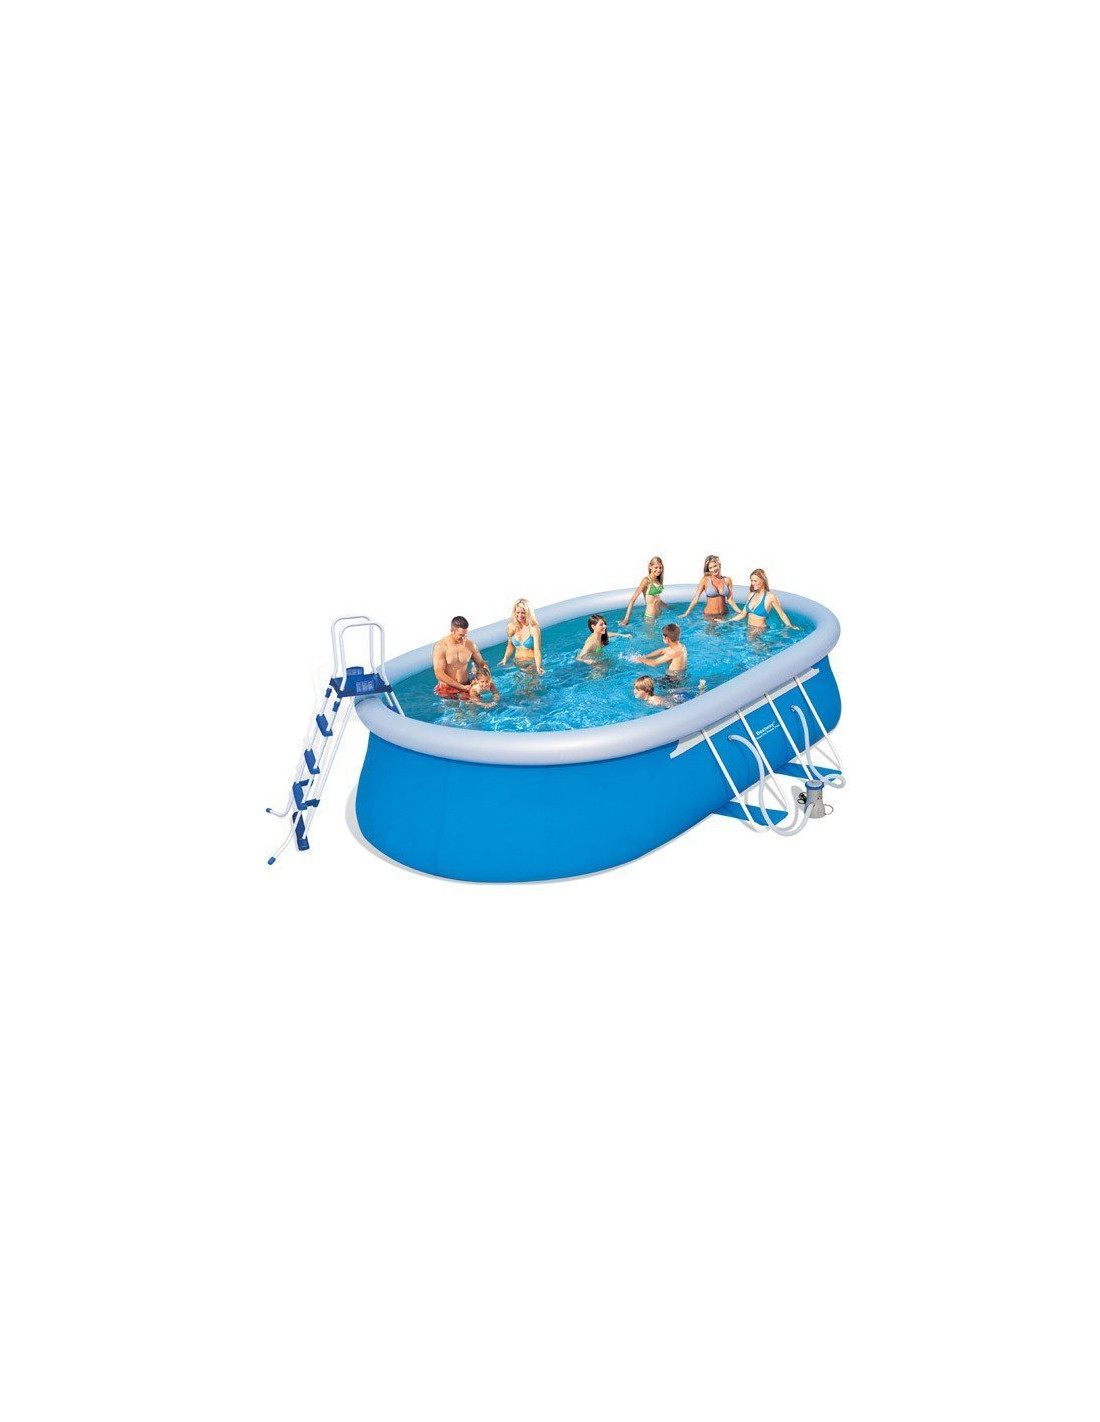 Piscine autoportante ovale bestway avec filtration cartouche for Piscine autoportante